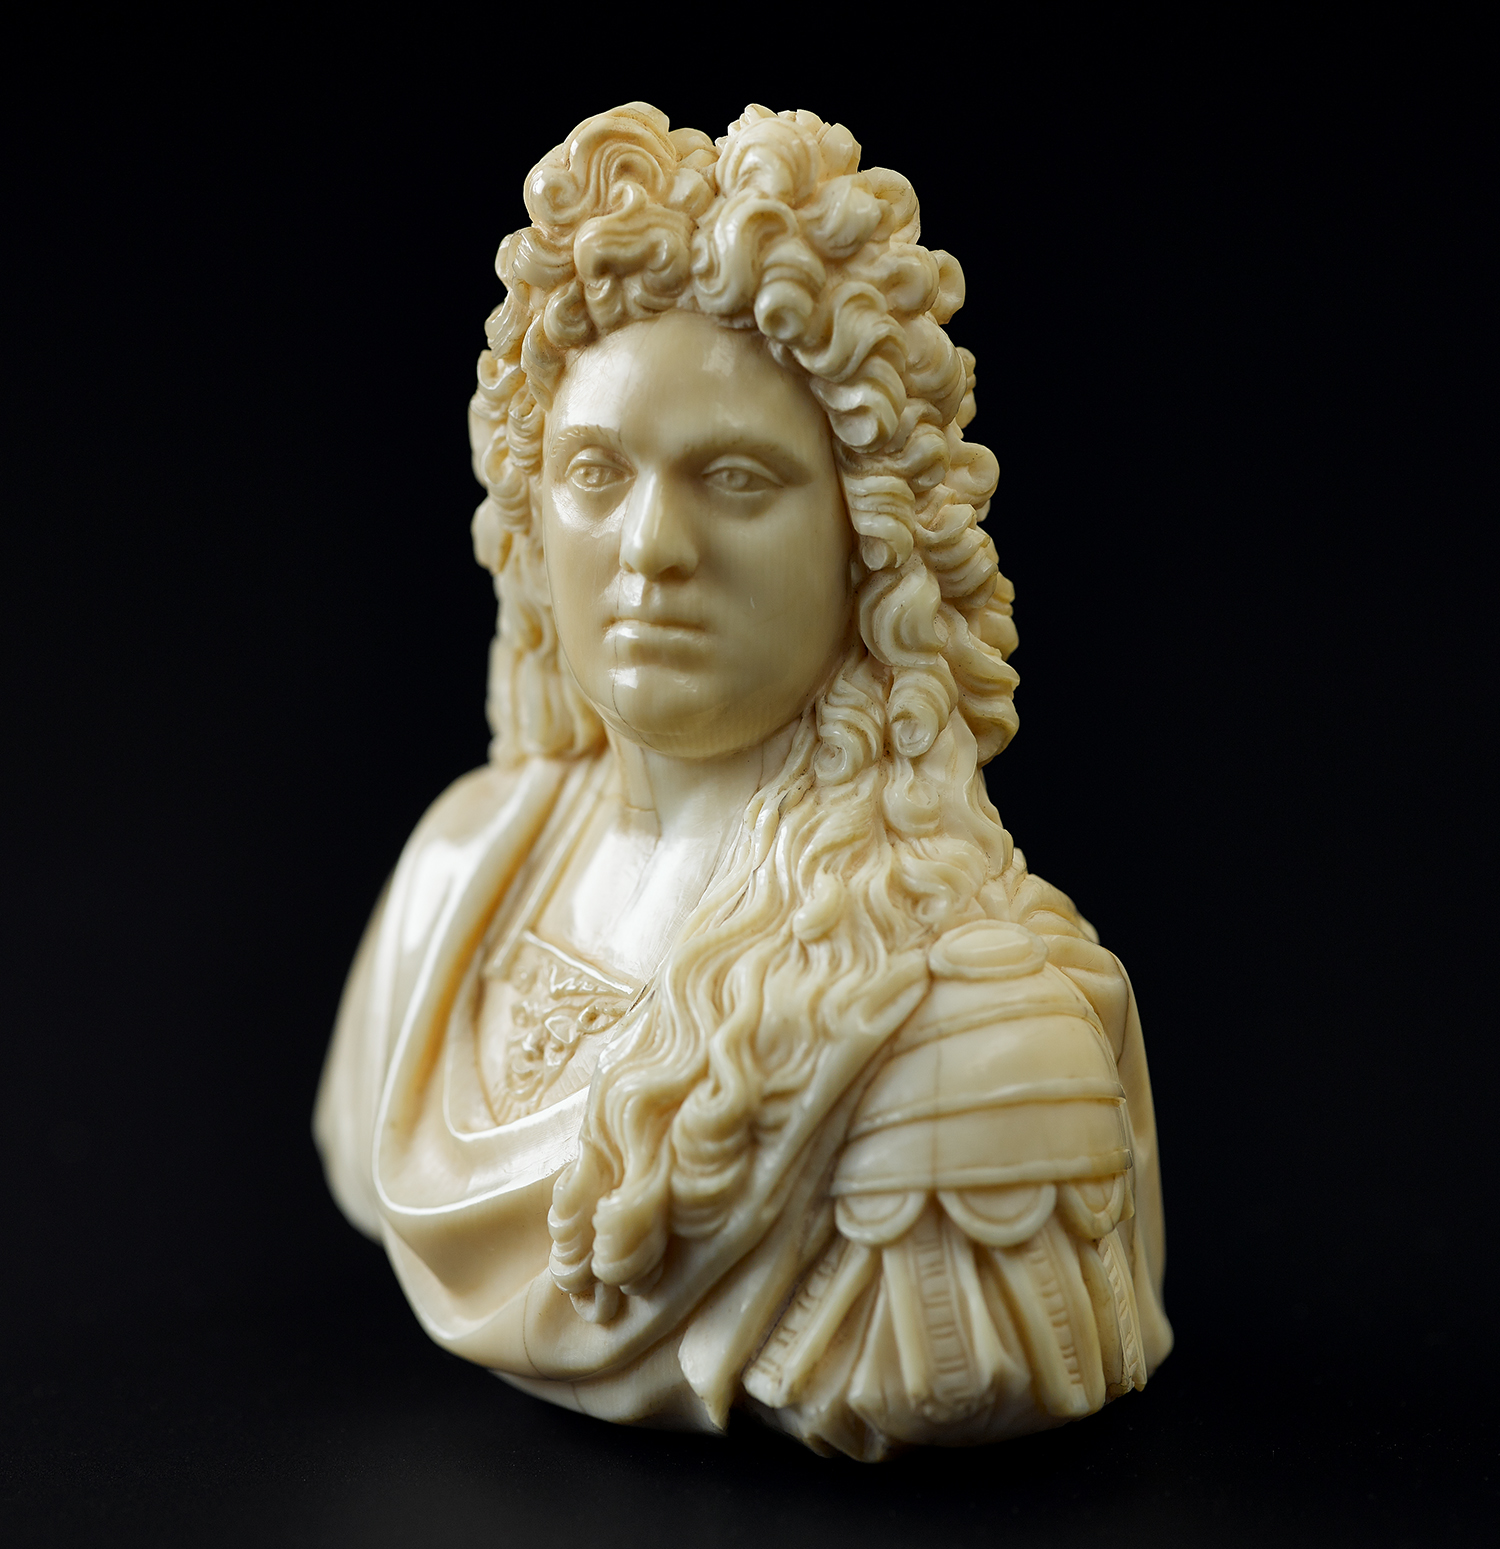 Portrait bust of John Mackenzie, 2nd Earl of Cromartie (1656-1731)